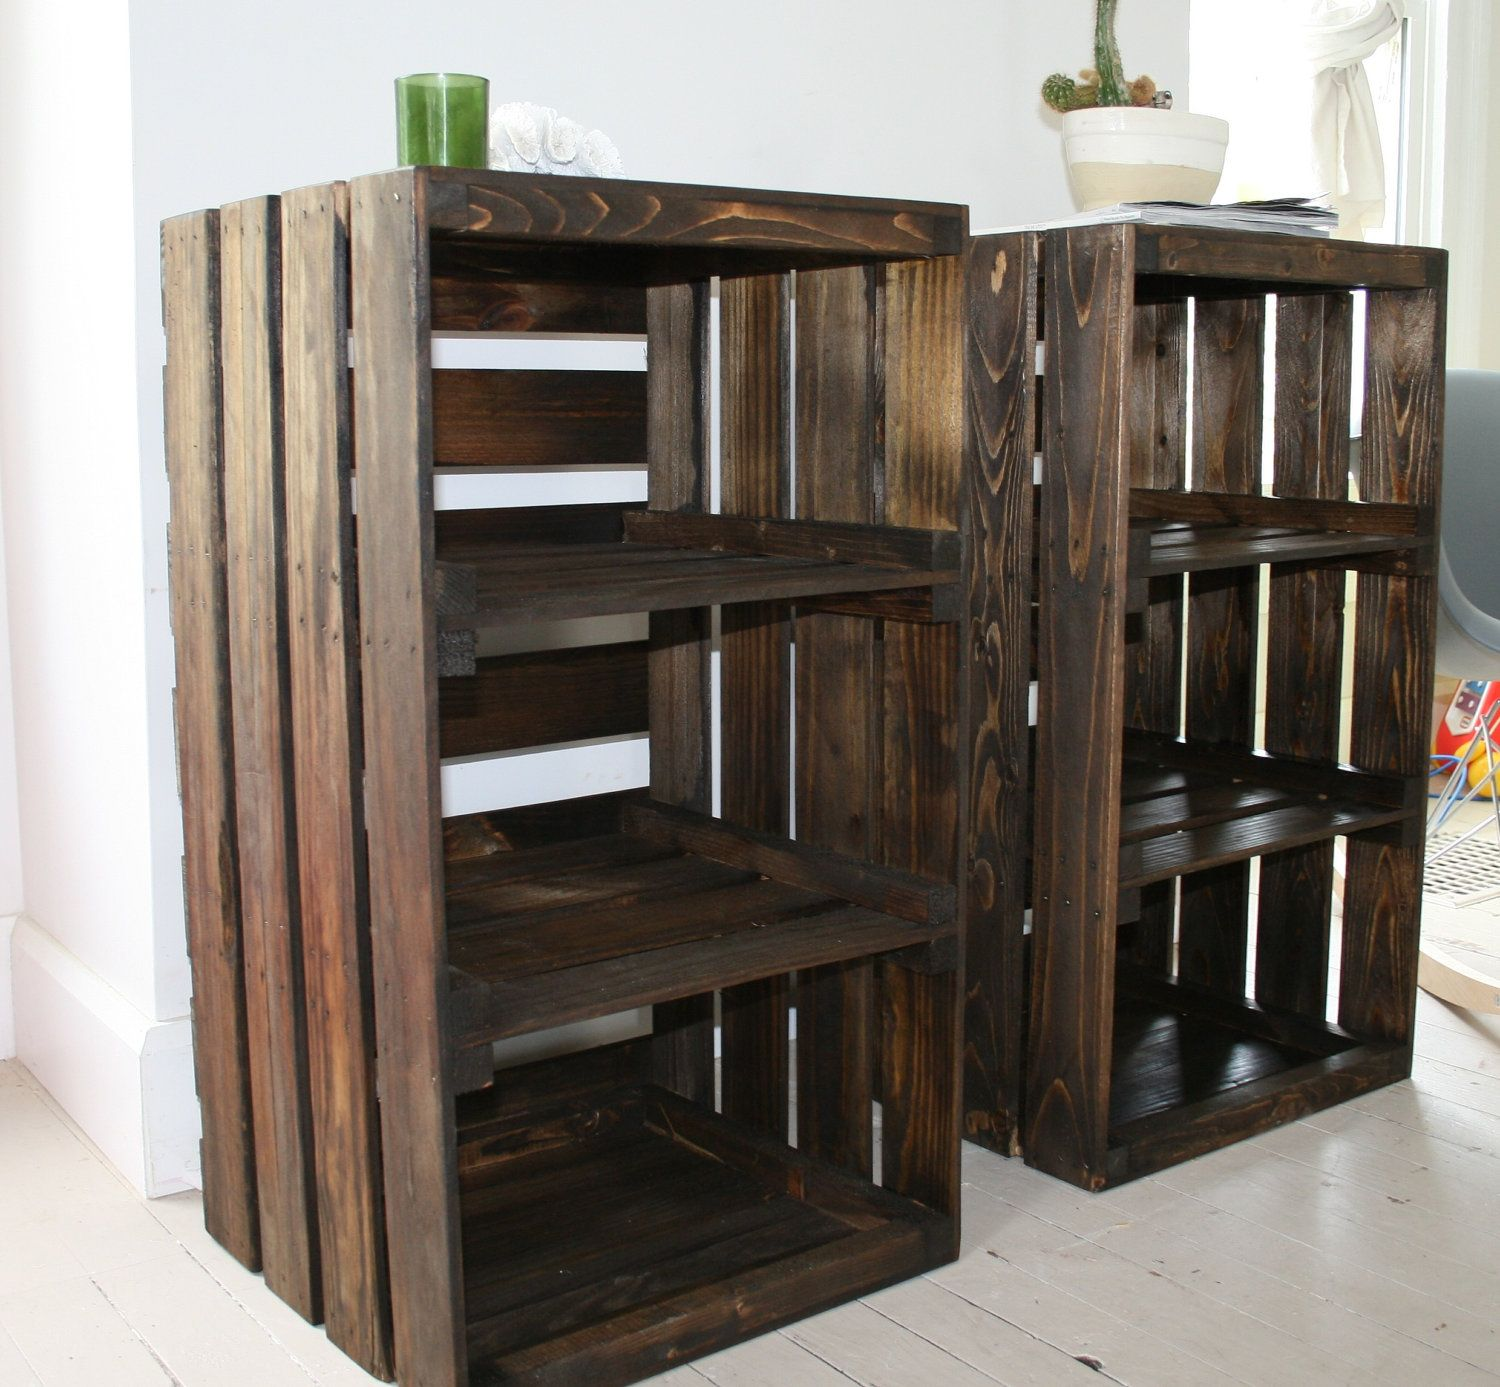 Best 25 Crate side table ideas on Pinterest  Crates